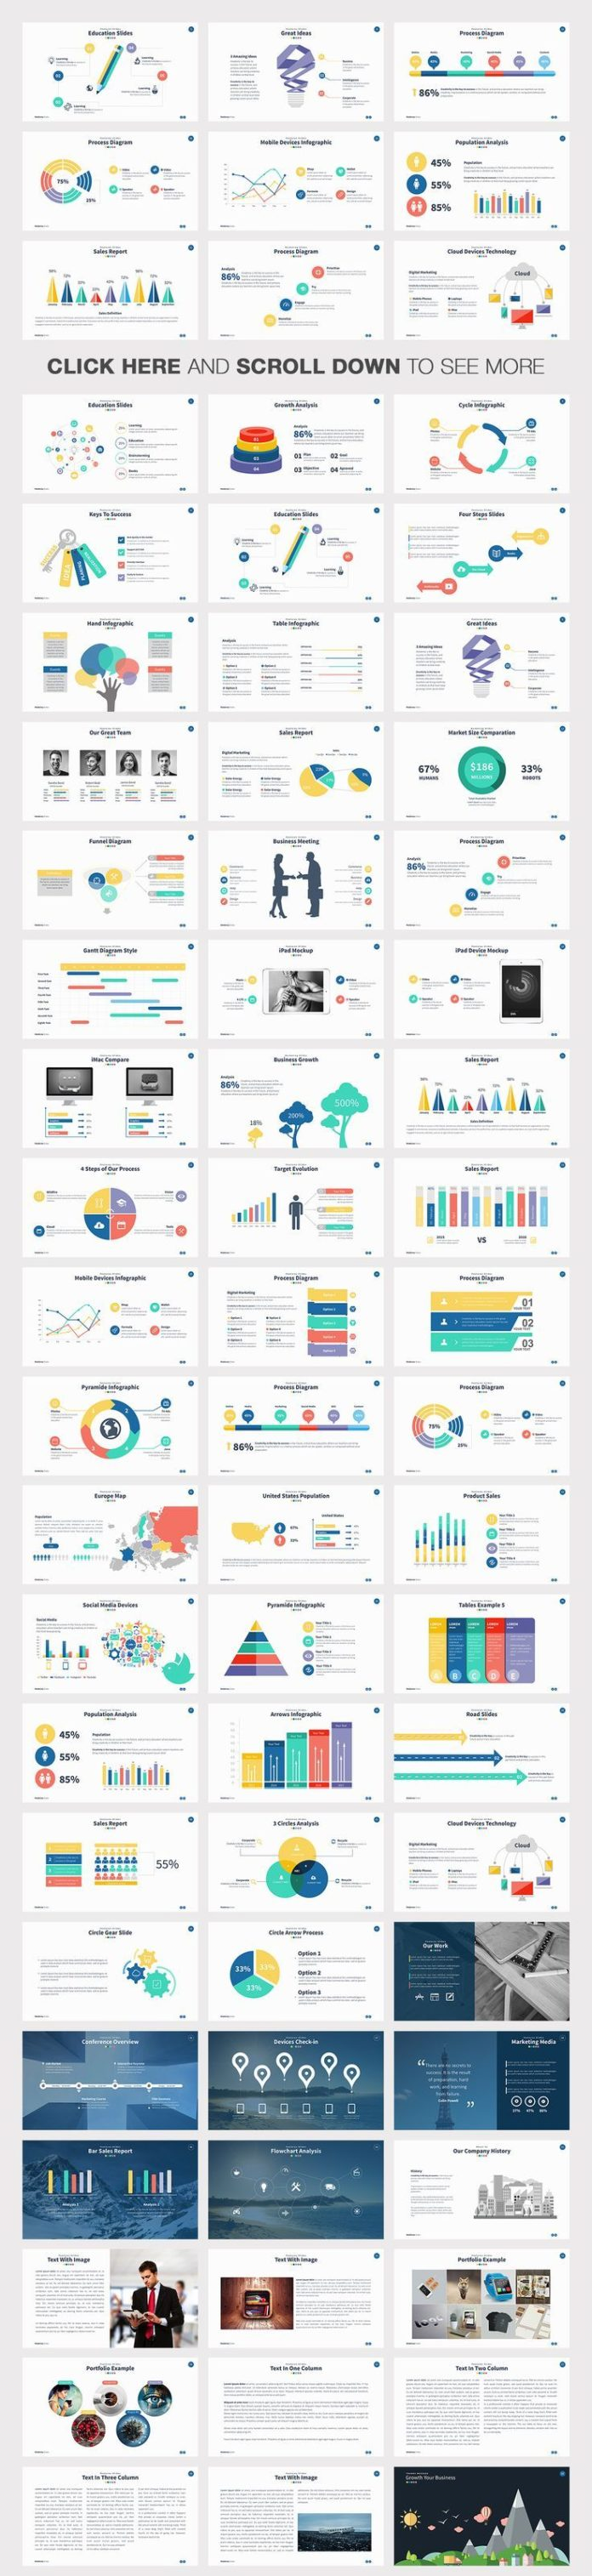 business infographic   business infographic   moderna